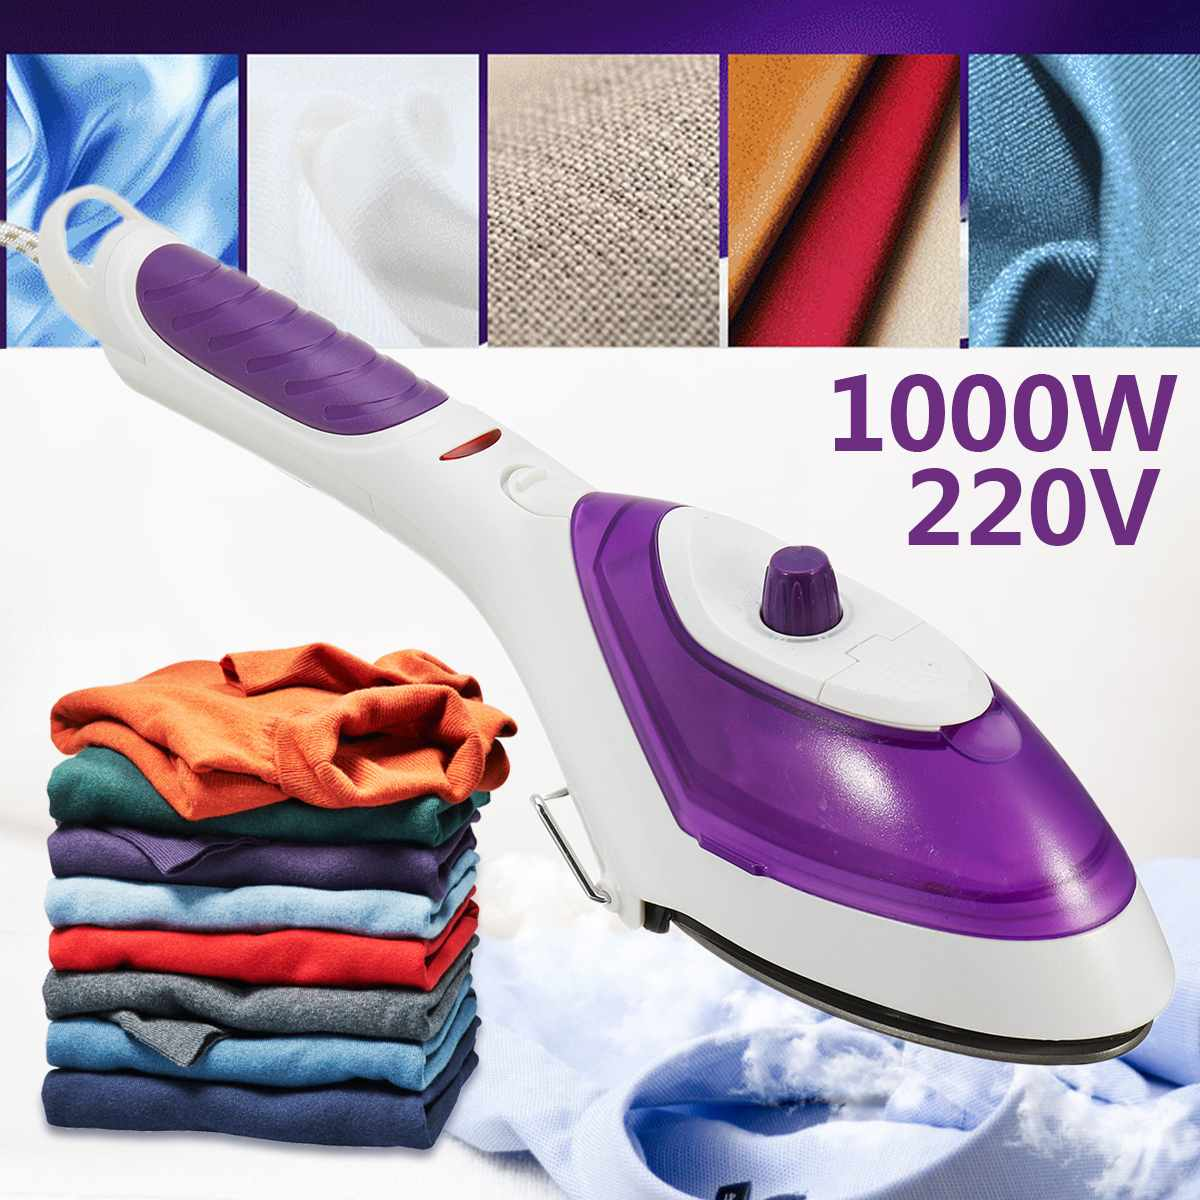 Garment Steamer 1000W 220V Handheld Clothes Fast-Heat Portable Steam Iron Home Travel EU Plug Capacity 70ml Strong Hotels Simply